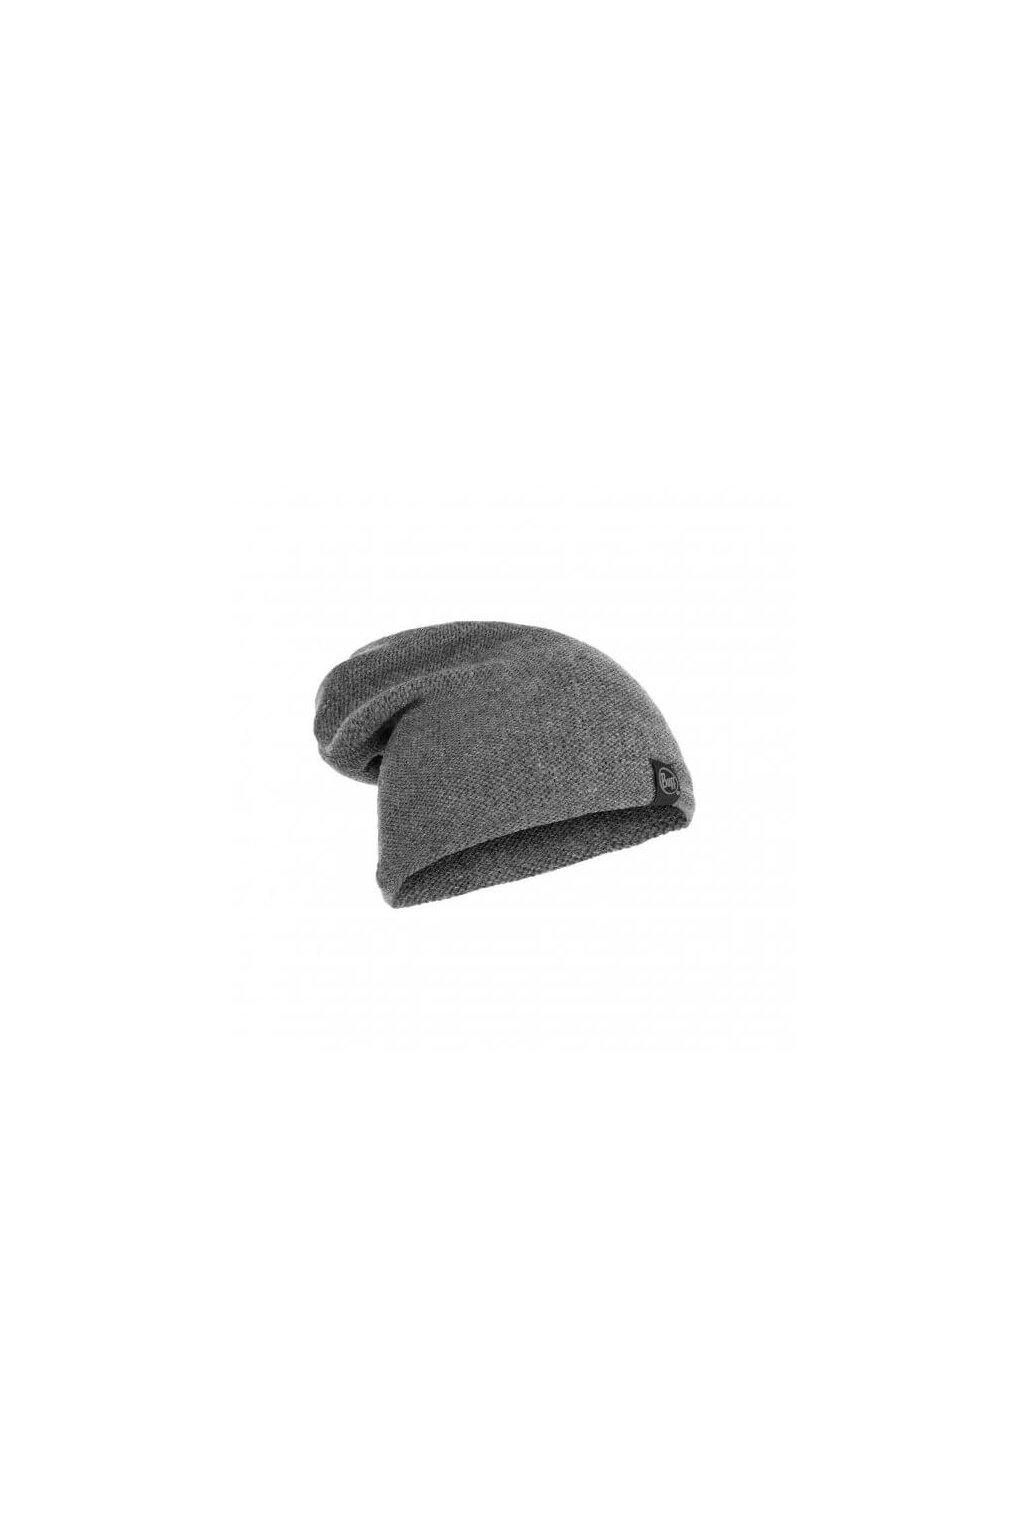 knitted hat buff colt grey pewter 1160289061000